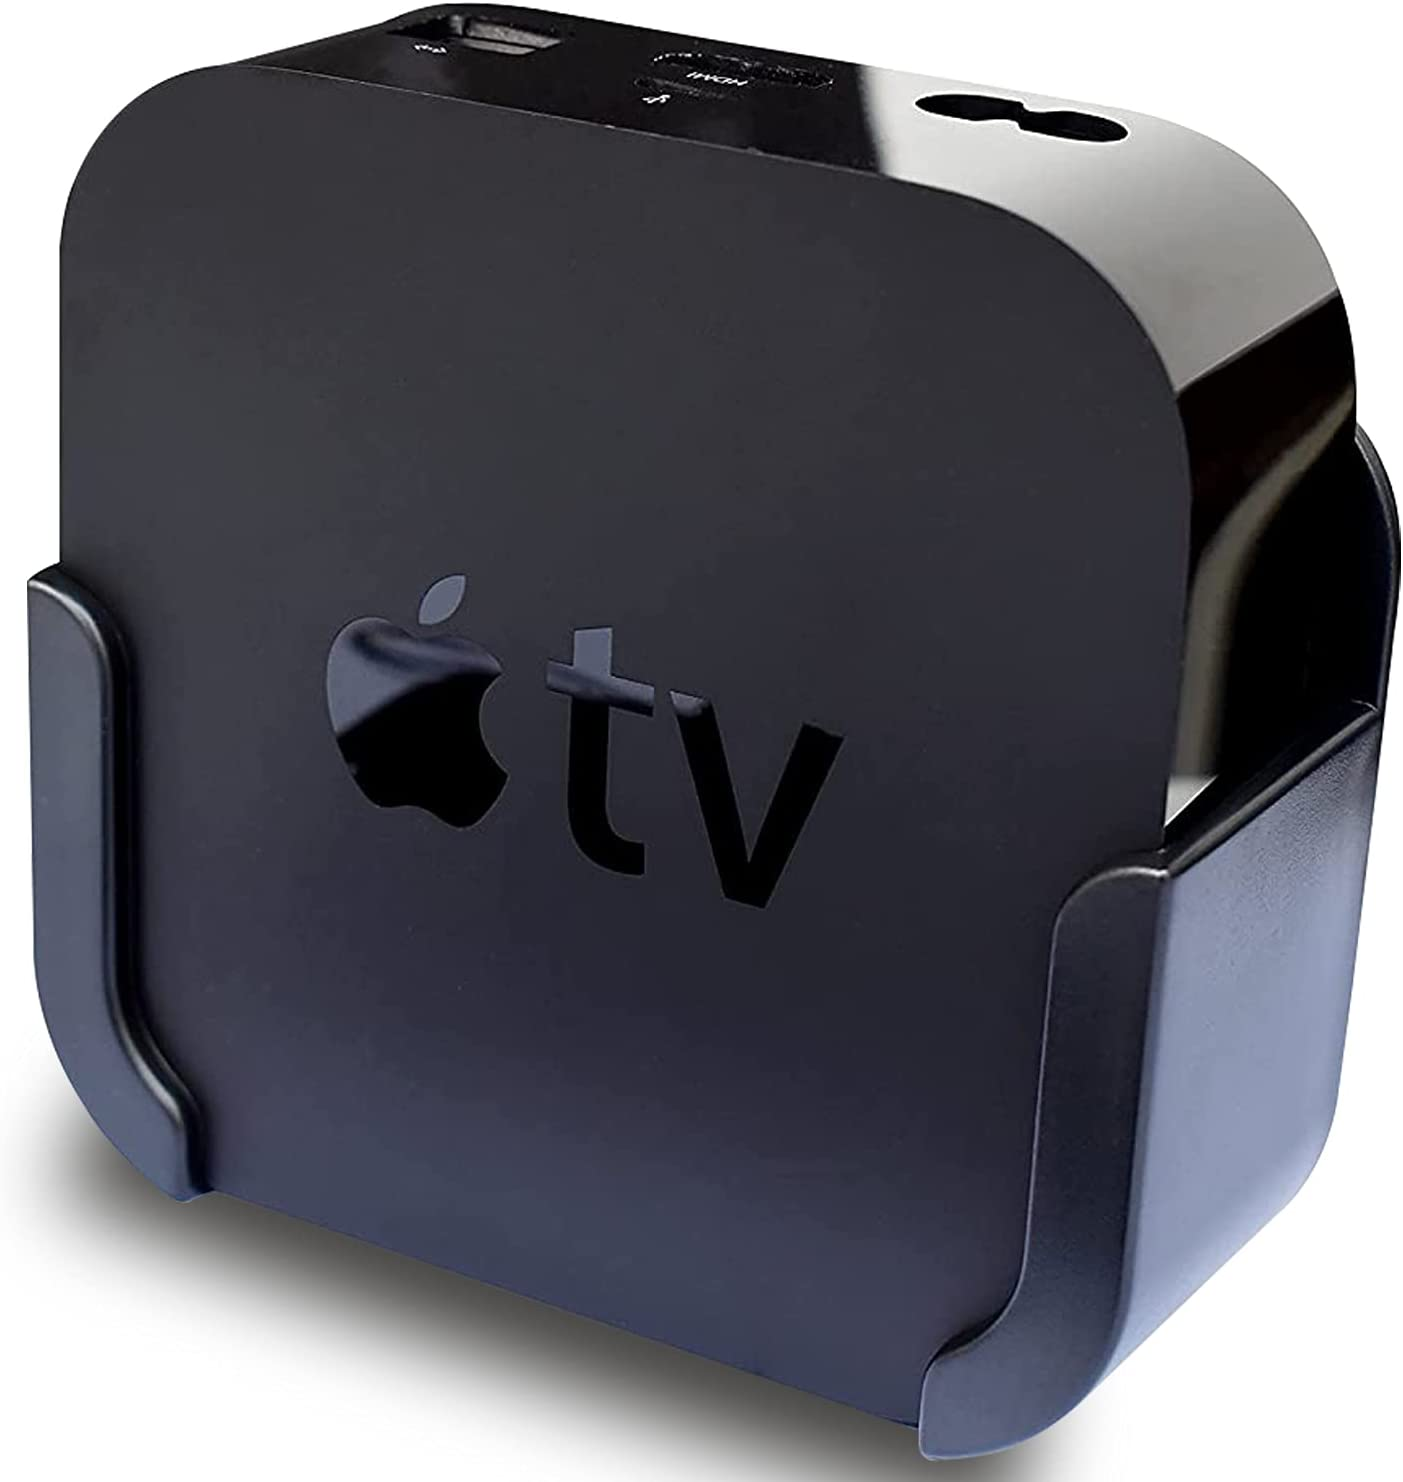 Apple TV Mount,Wall Mount Holder for Apple TV 4th/4k and Apple TV HD,Easy to Install(Compatible with Apple TV 4K and Apple TV HD)